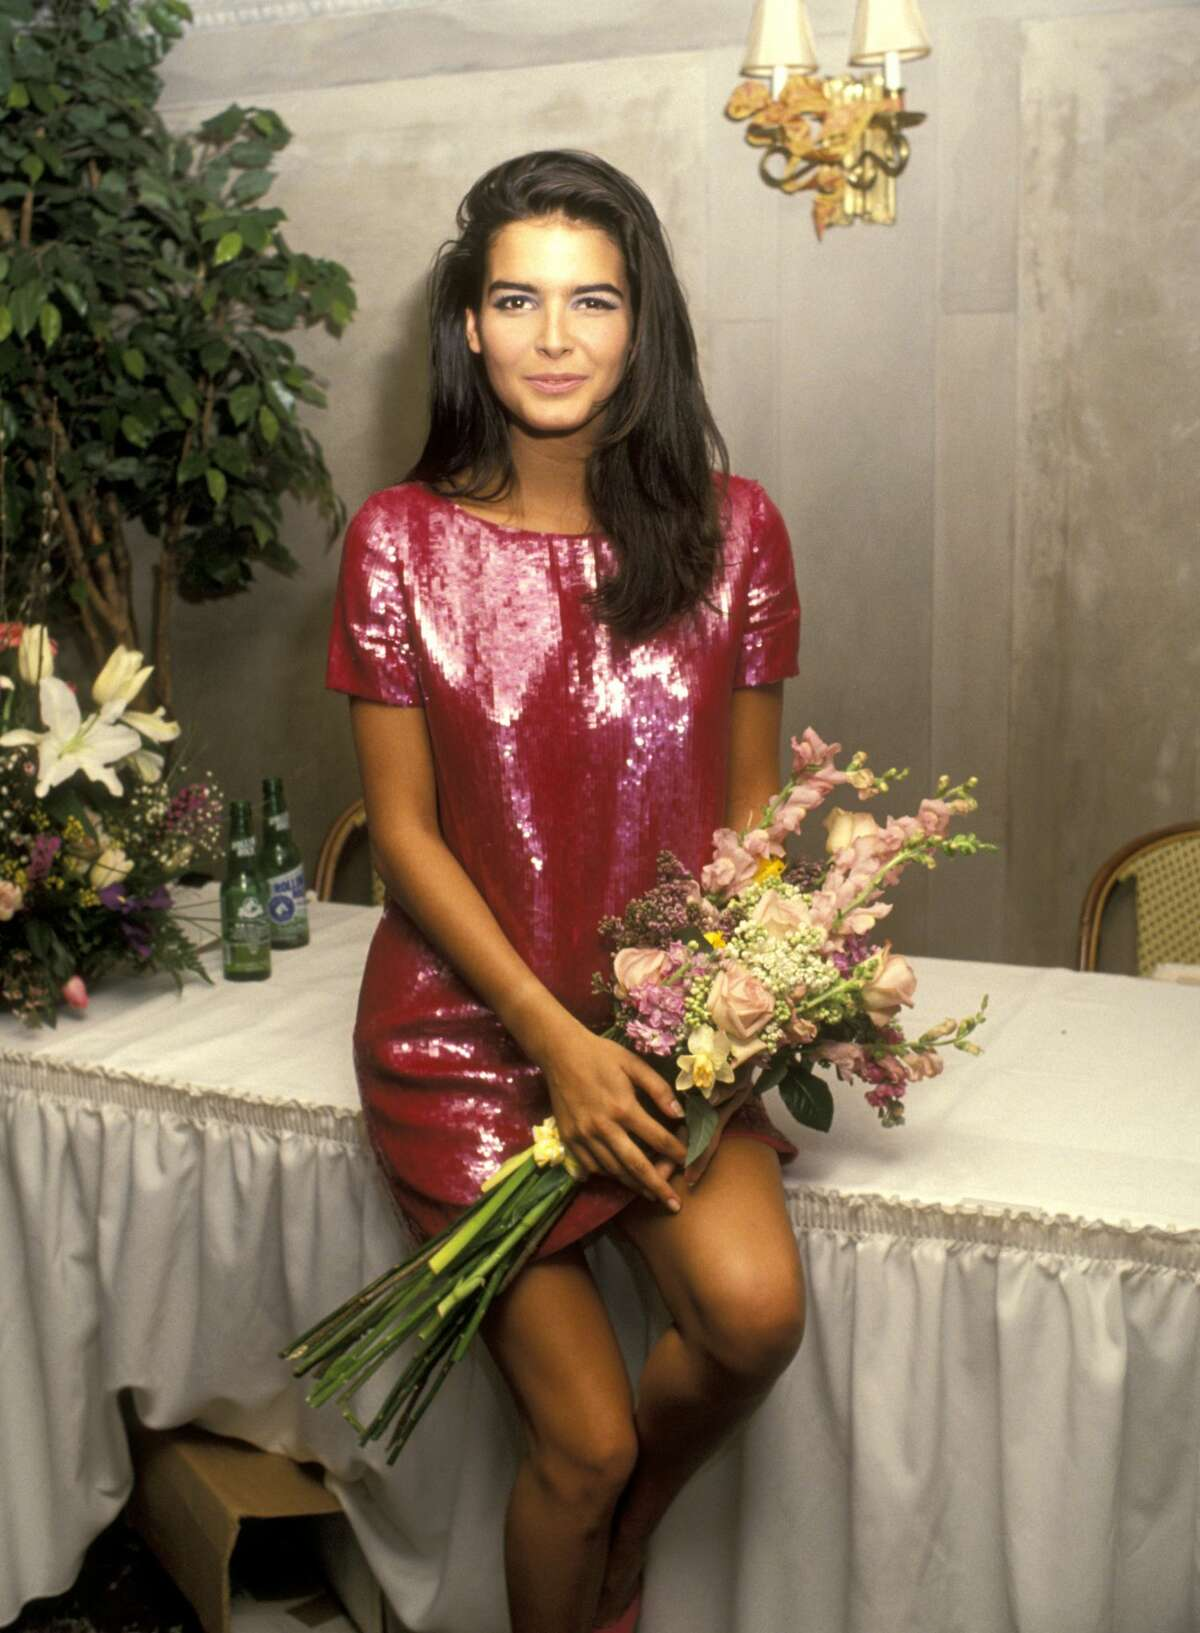 1991: Angie Harmon during Press Conference for Winner of Spectrum 1991 Fresh Faces Model Search at Laura Belle's in New York, New York, United States.